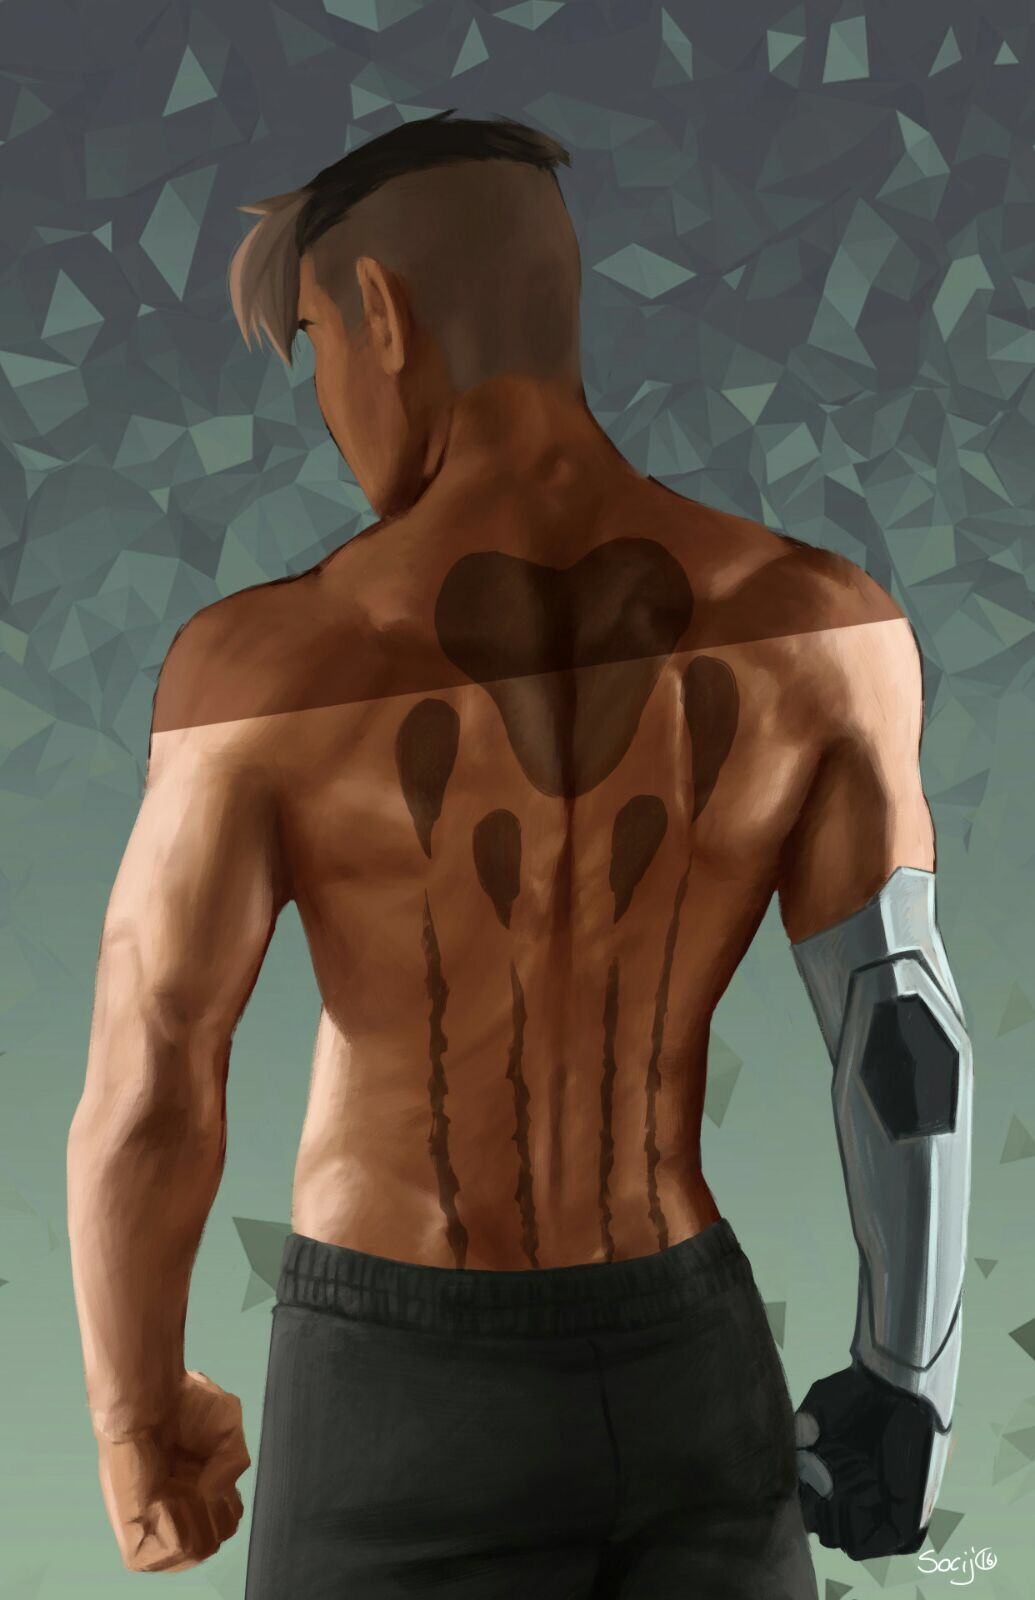 shiro and black lion paw print tattoo on his back from voltron